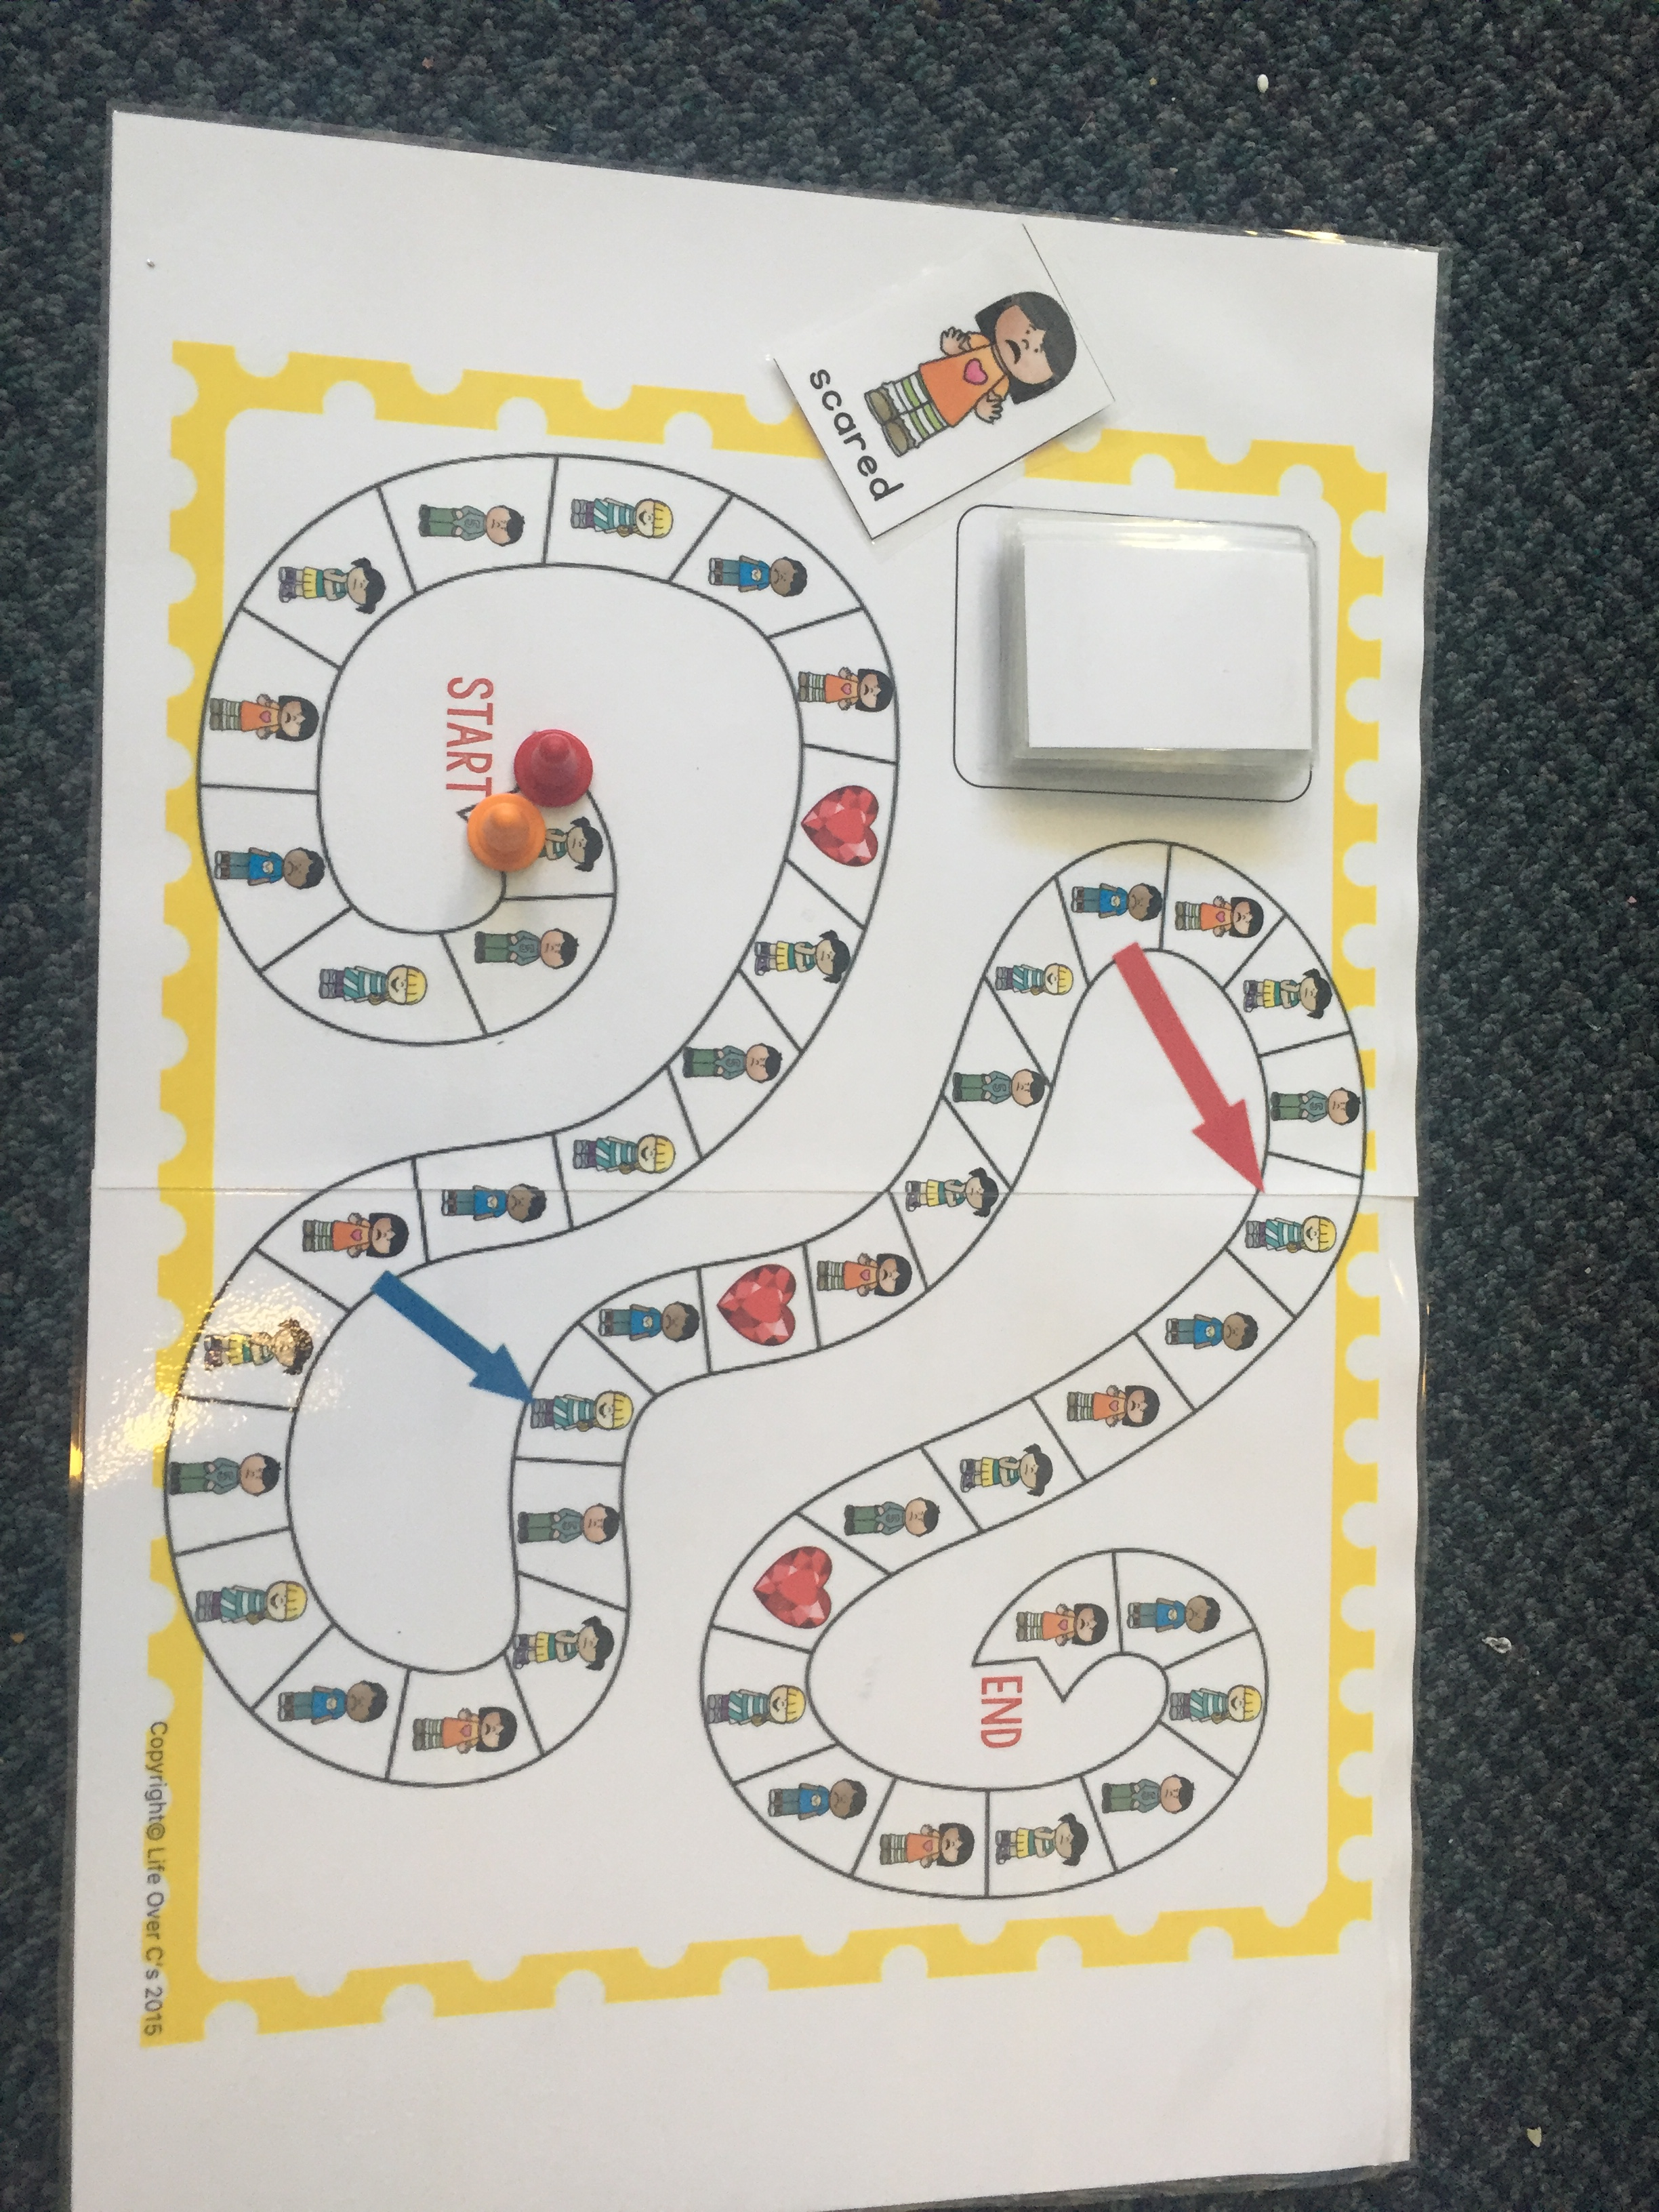 My Favorite Free Printable Rapport Building Board Games